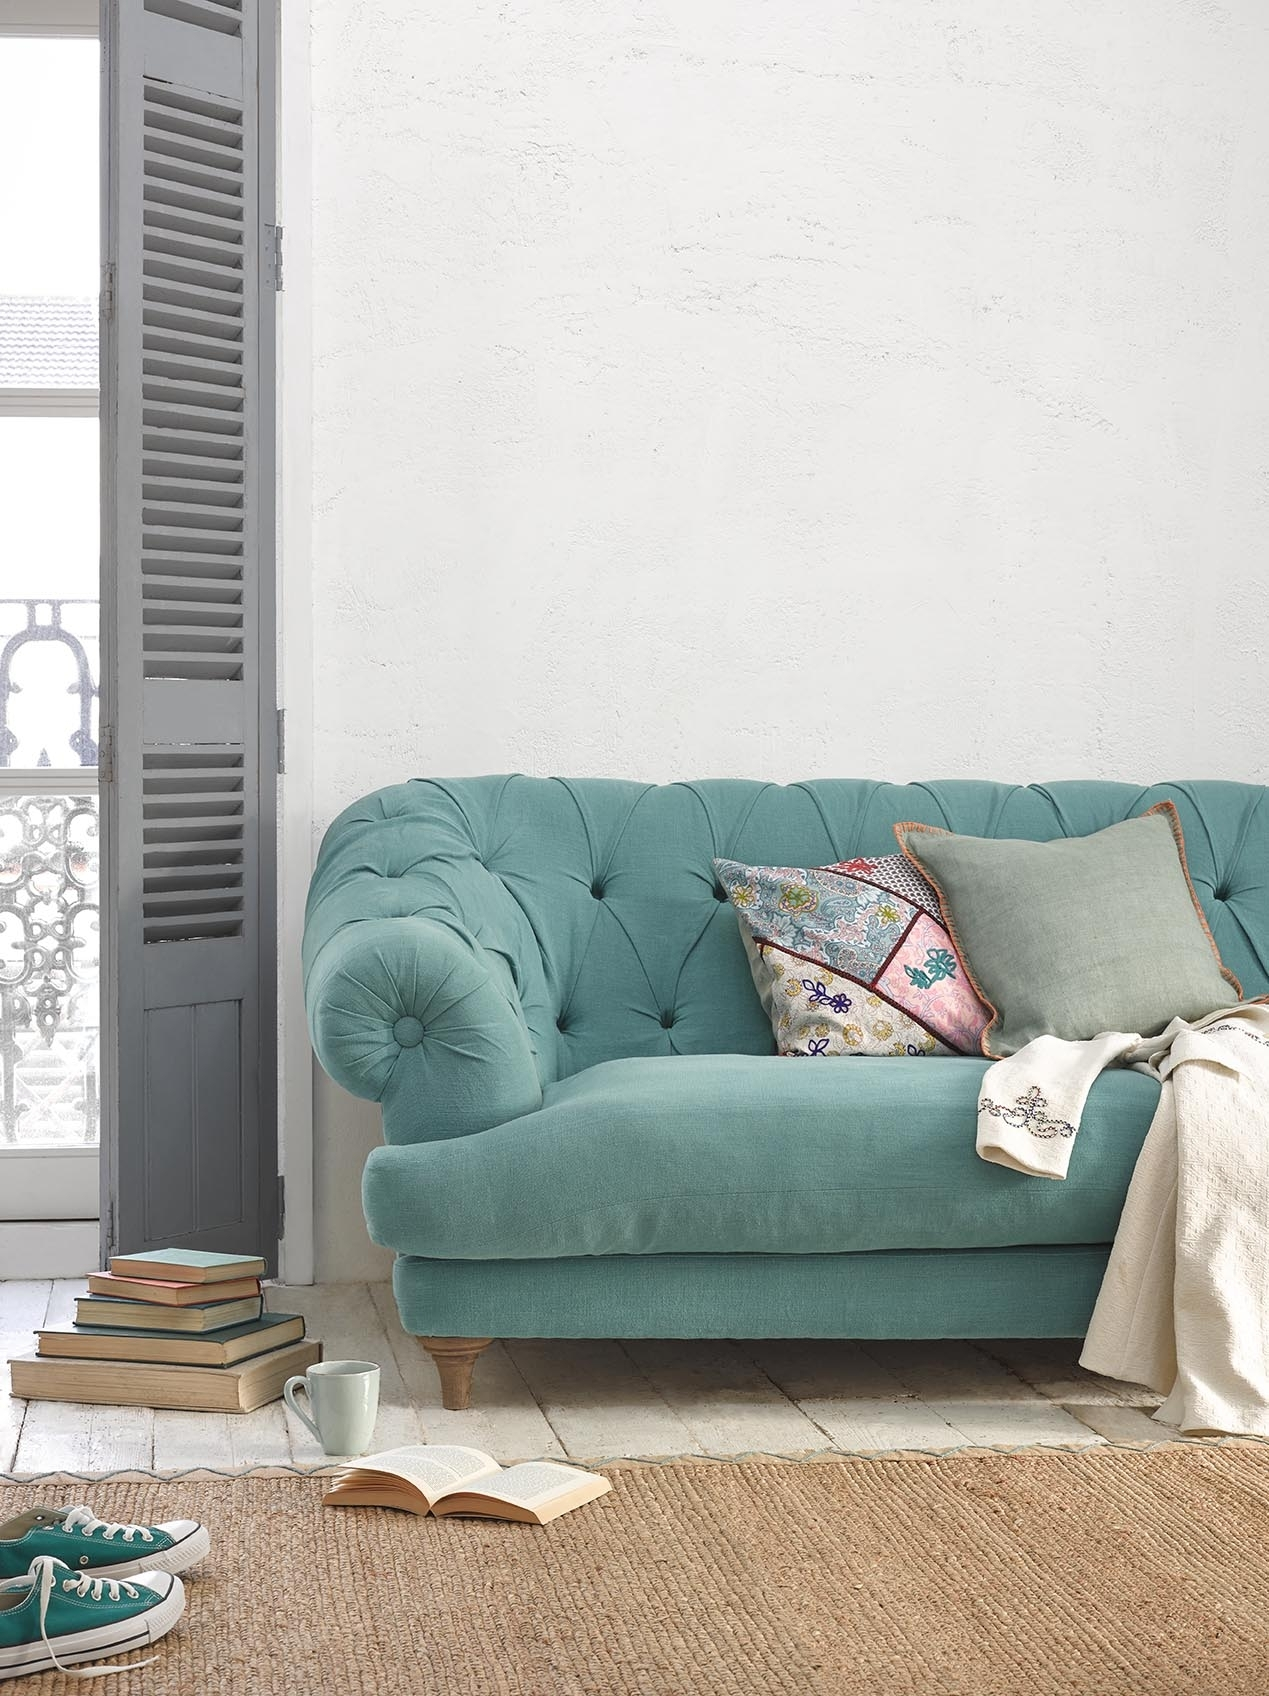 Bagsie Sofa | Chesterfield Style Sofa | Loaf with regard to Aqua Sofas (Image 3 of 10)